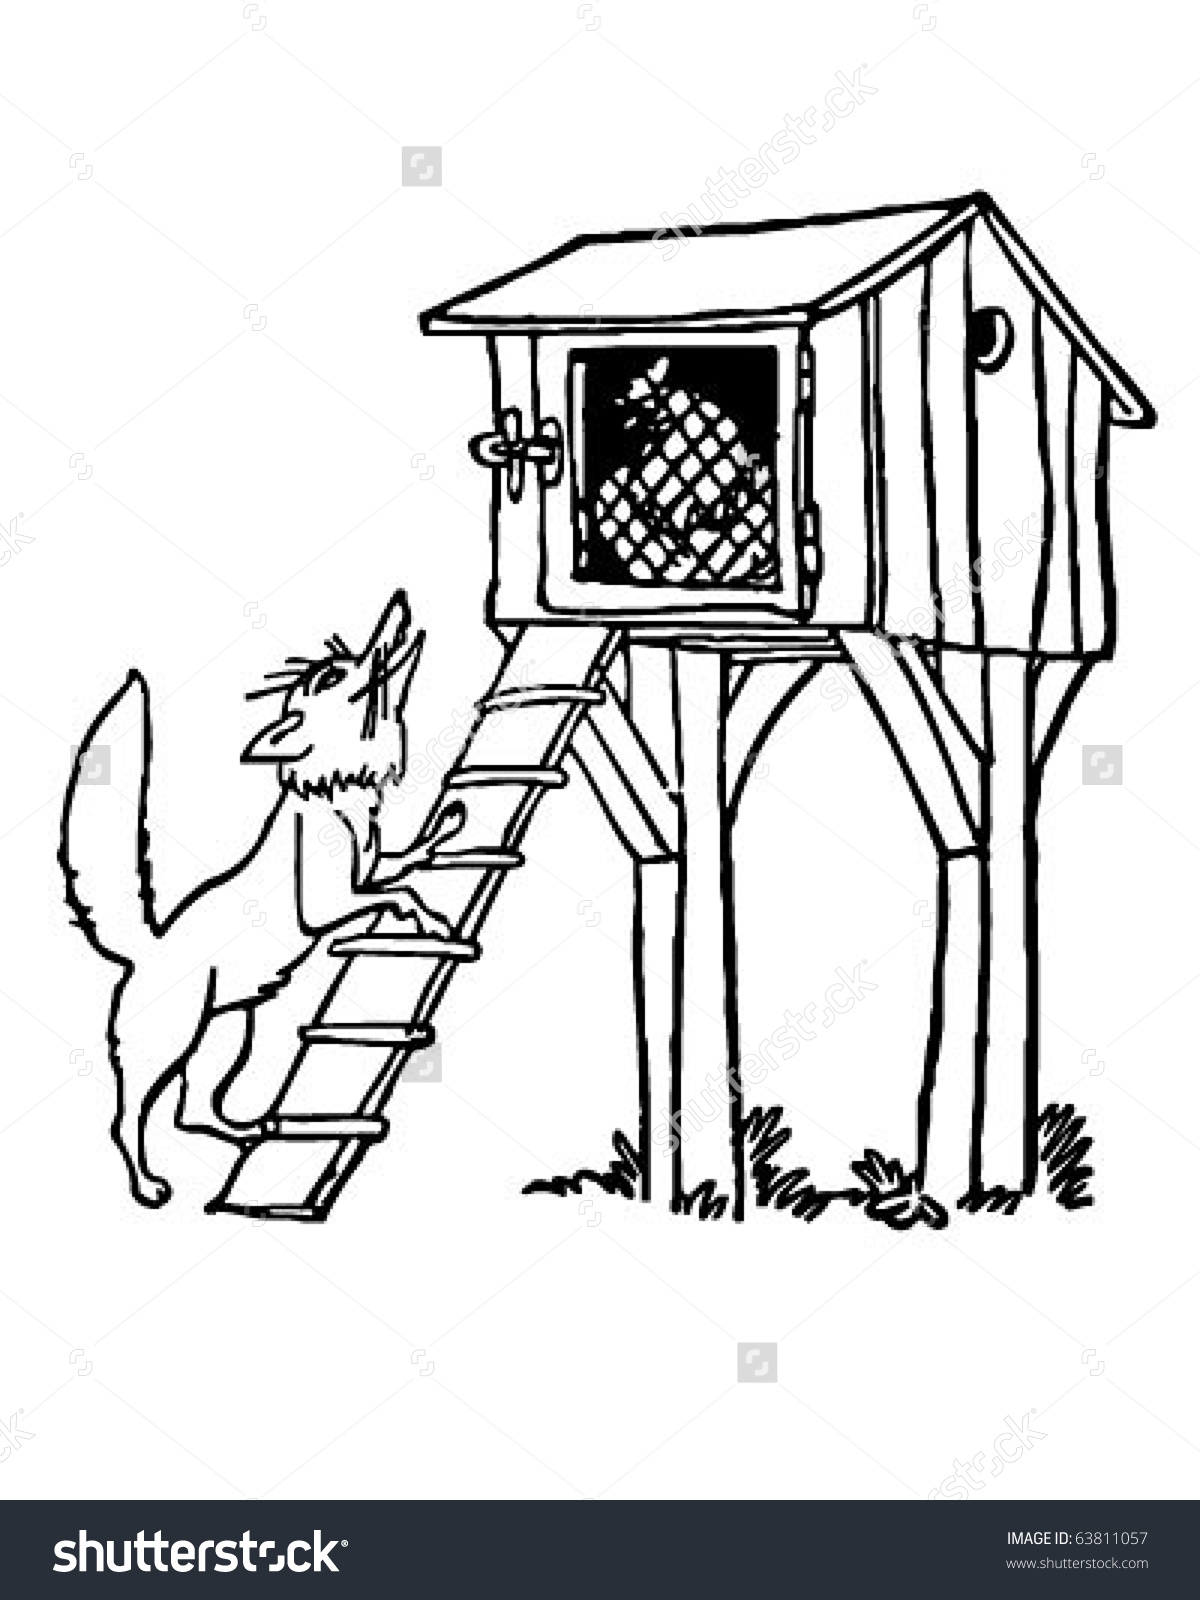 Fox At The Chicken Coop - Retro Clipart -Fox At The Chicken Coop - Retro Clipart Illustration-16